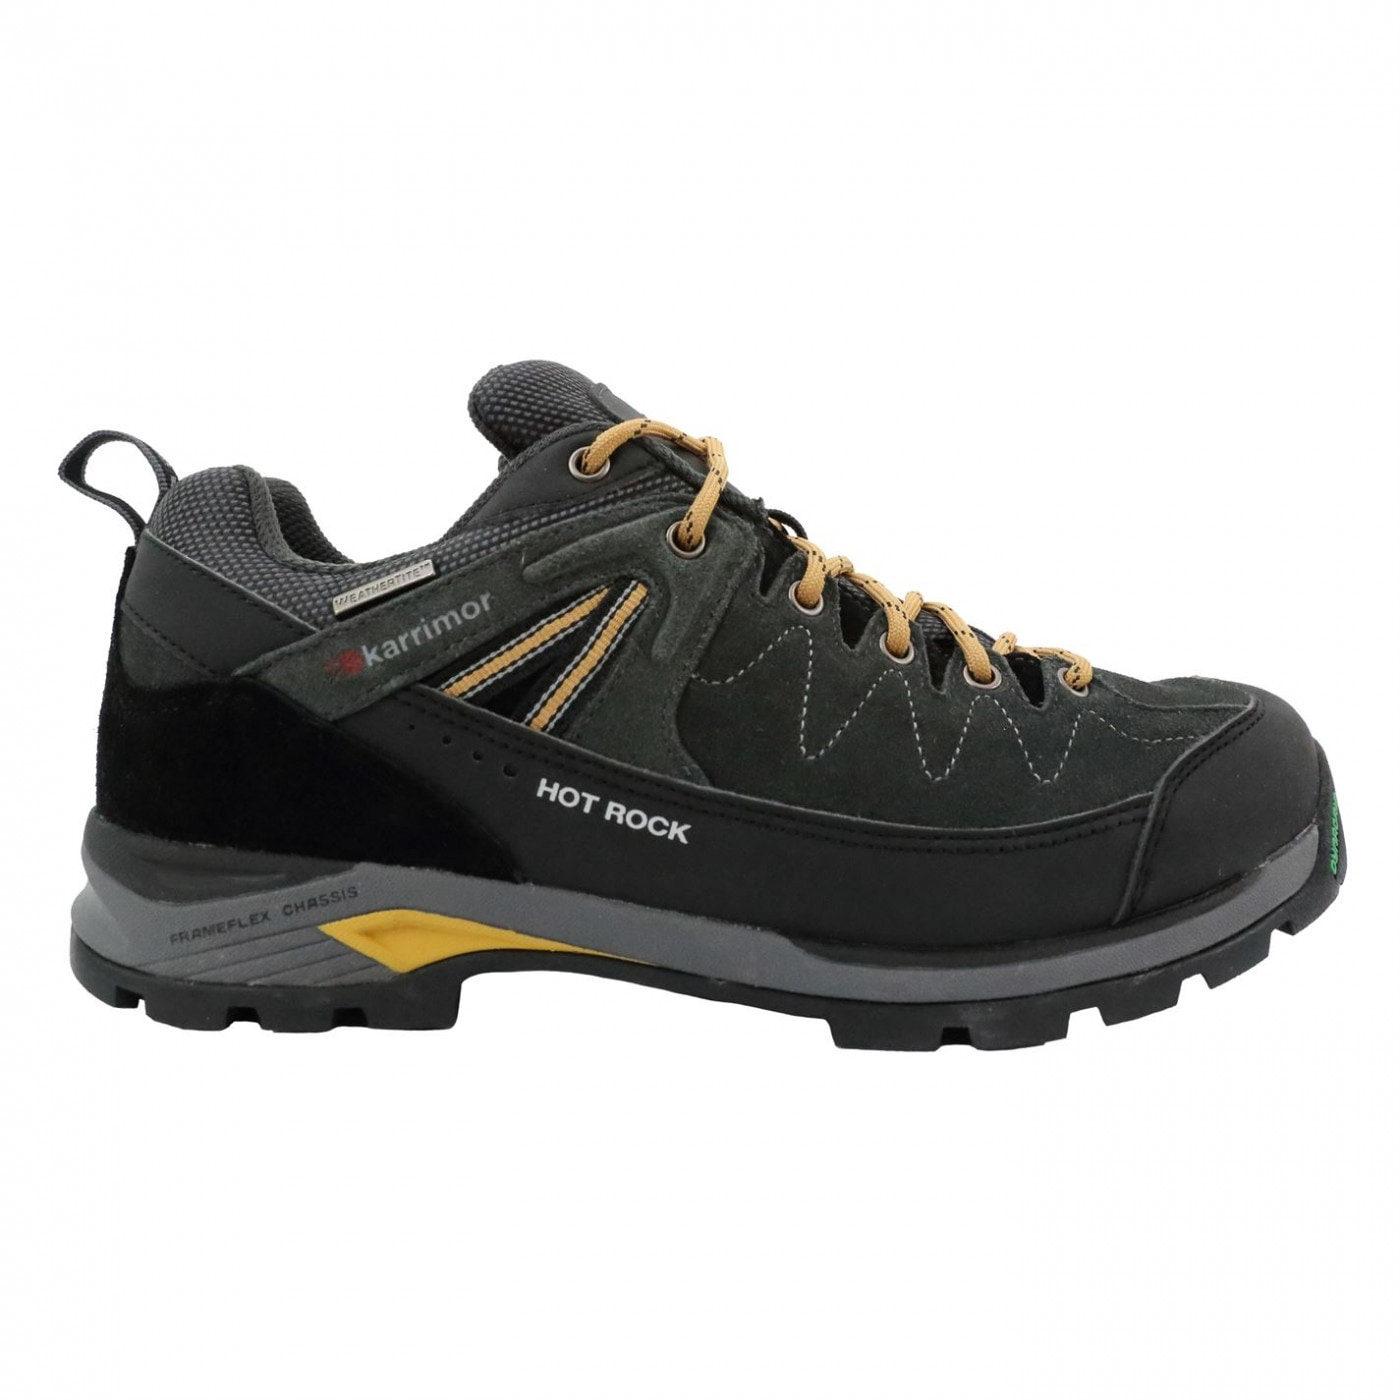 Men's walking shoes Karrimor Hot Rock